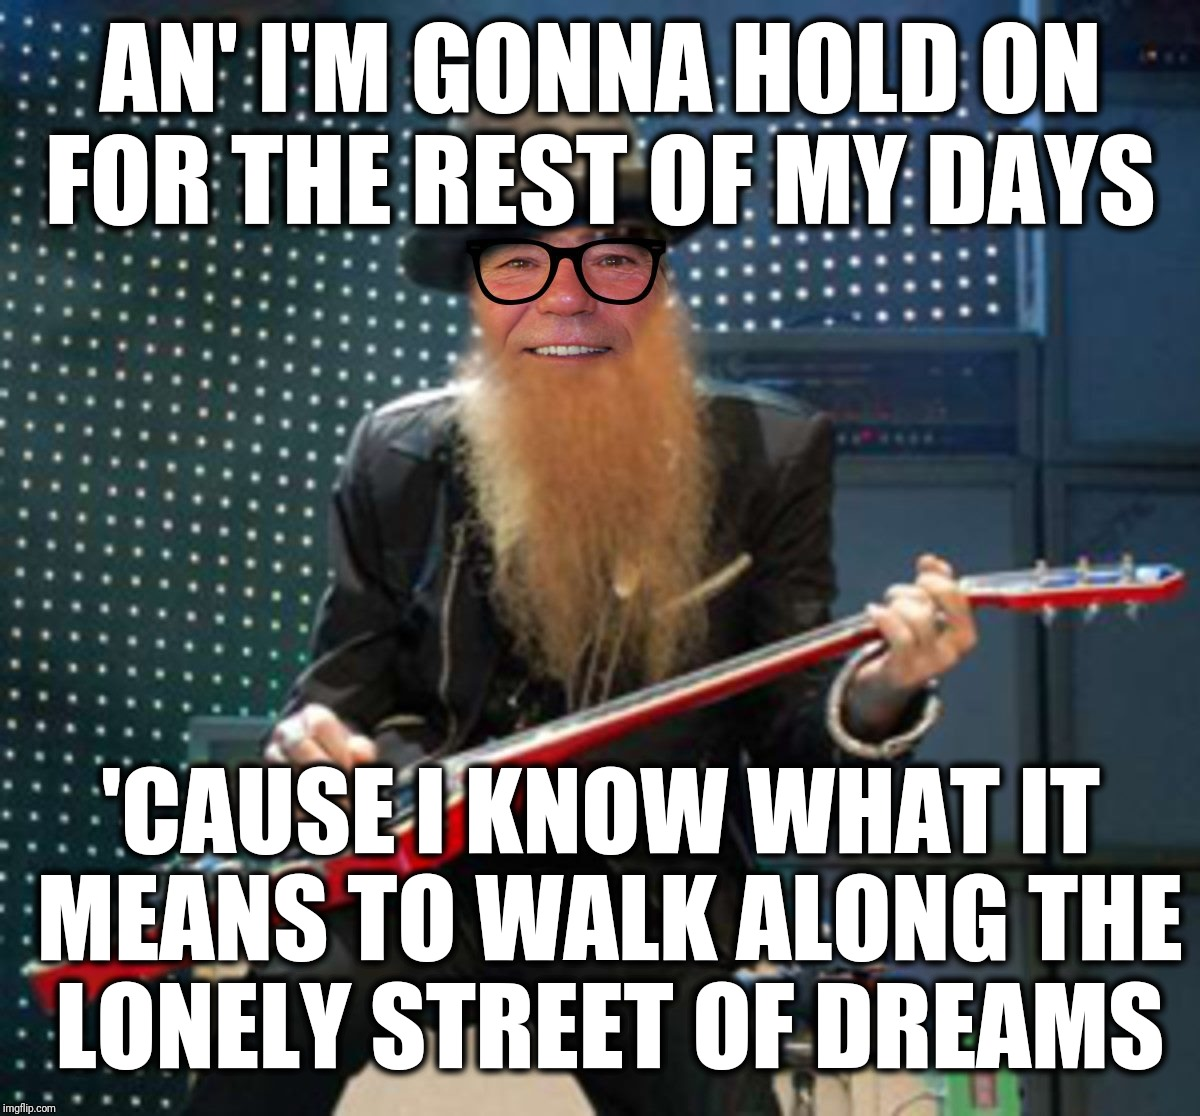 rocker coollew | AN' I'M GONNA HOLD ON FOR THE REST OF MY DAYS 'CAUSE I KNOW WHAT IT MEANS TO WALK ALONG THE LONELY STREET OF DREAMS | image tagged in rocker coollew | made w/ Imgflip meme maker